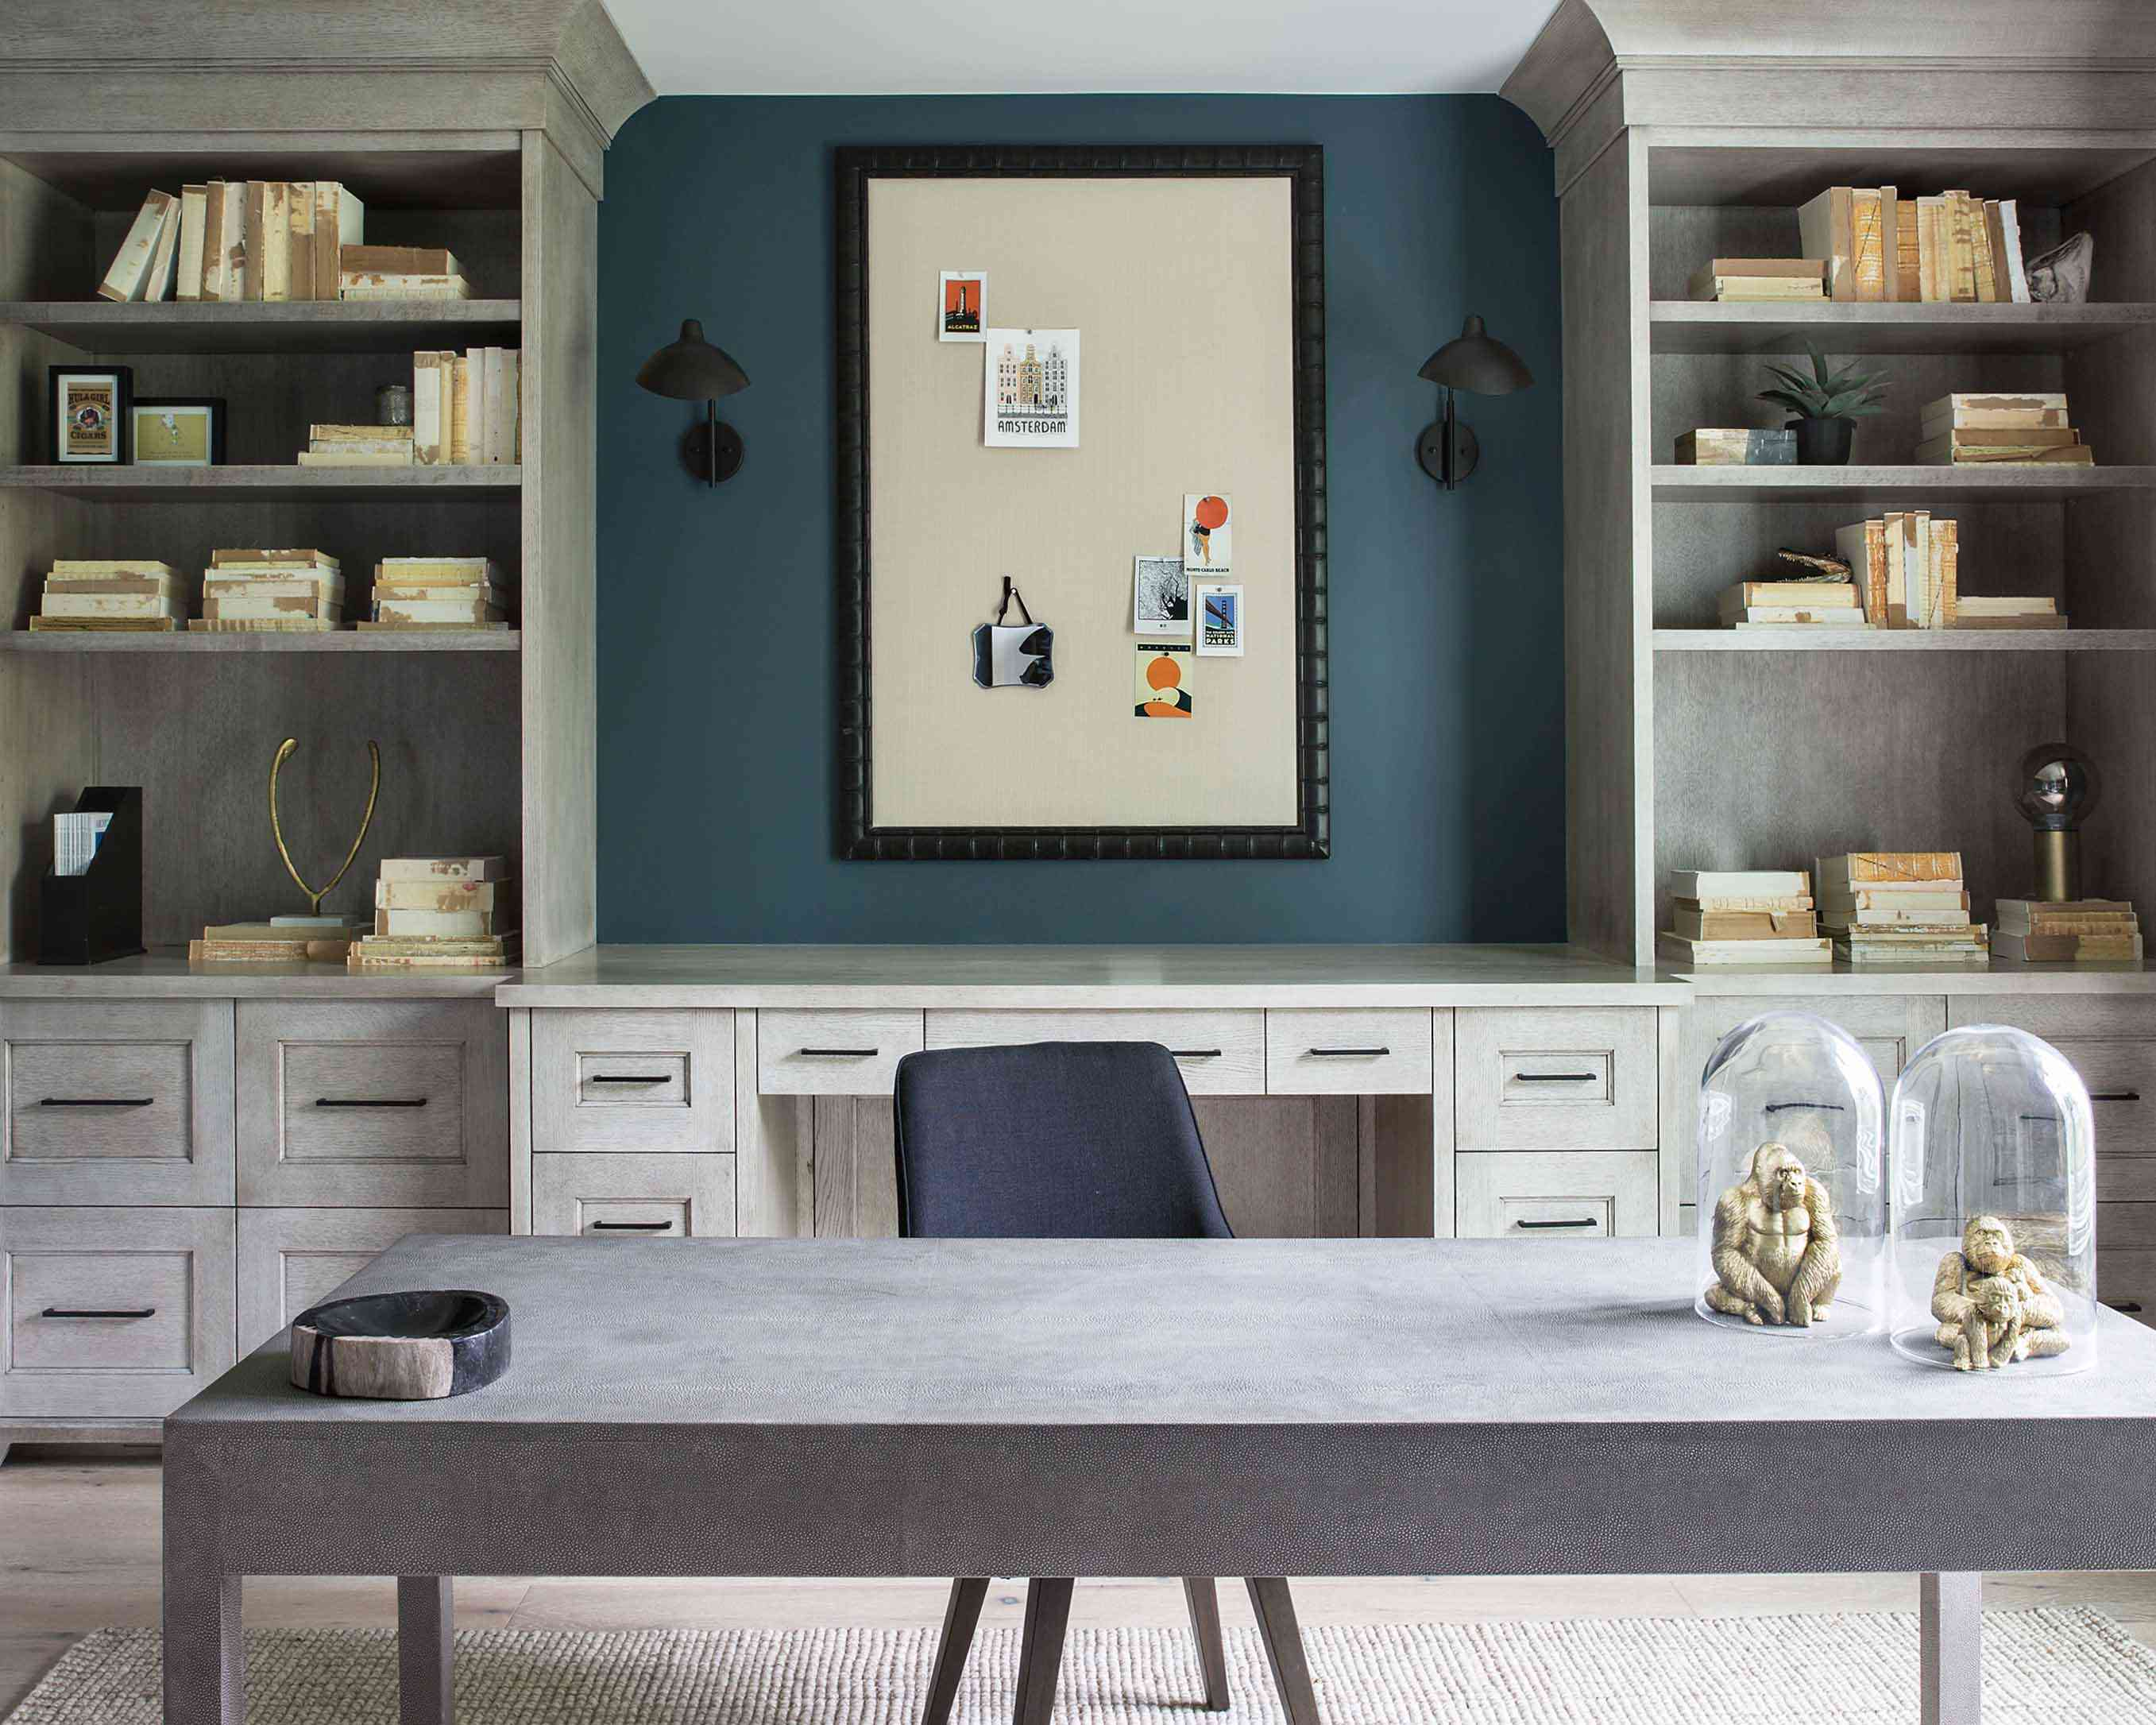 A home office decorated with gold gorilla sculptures and colorful snippets of paper